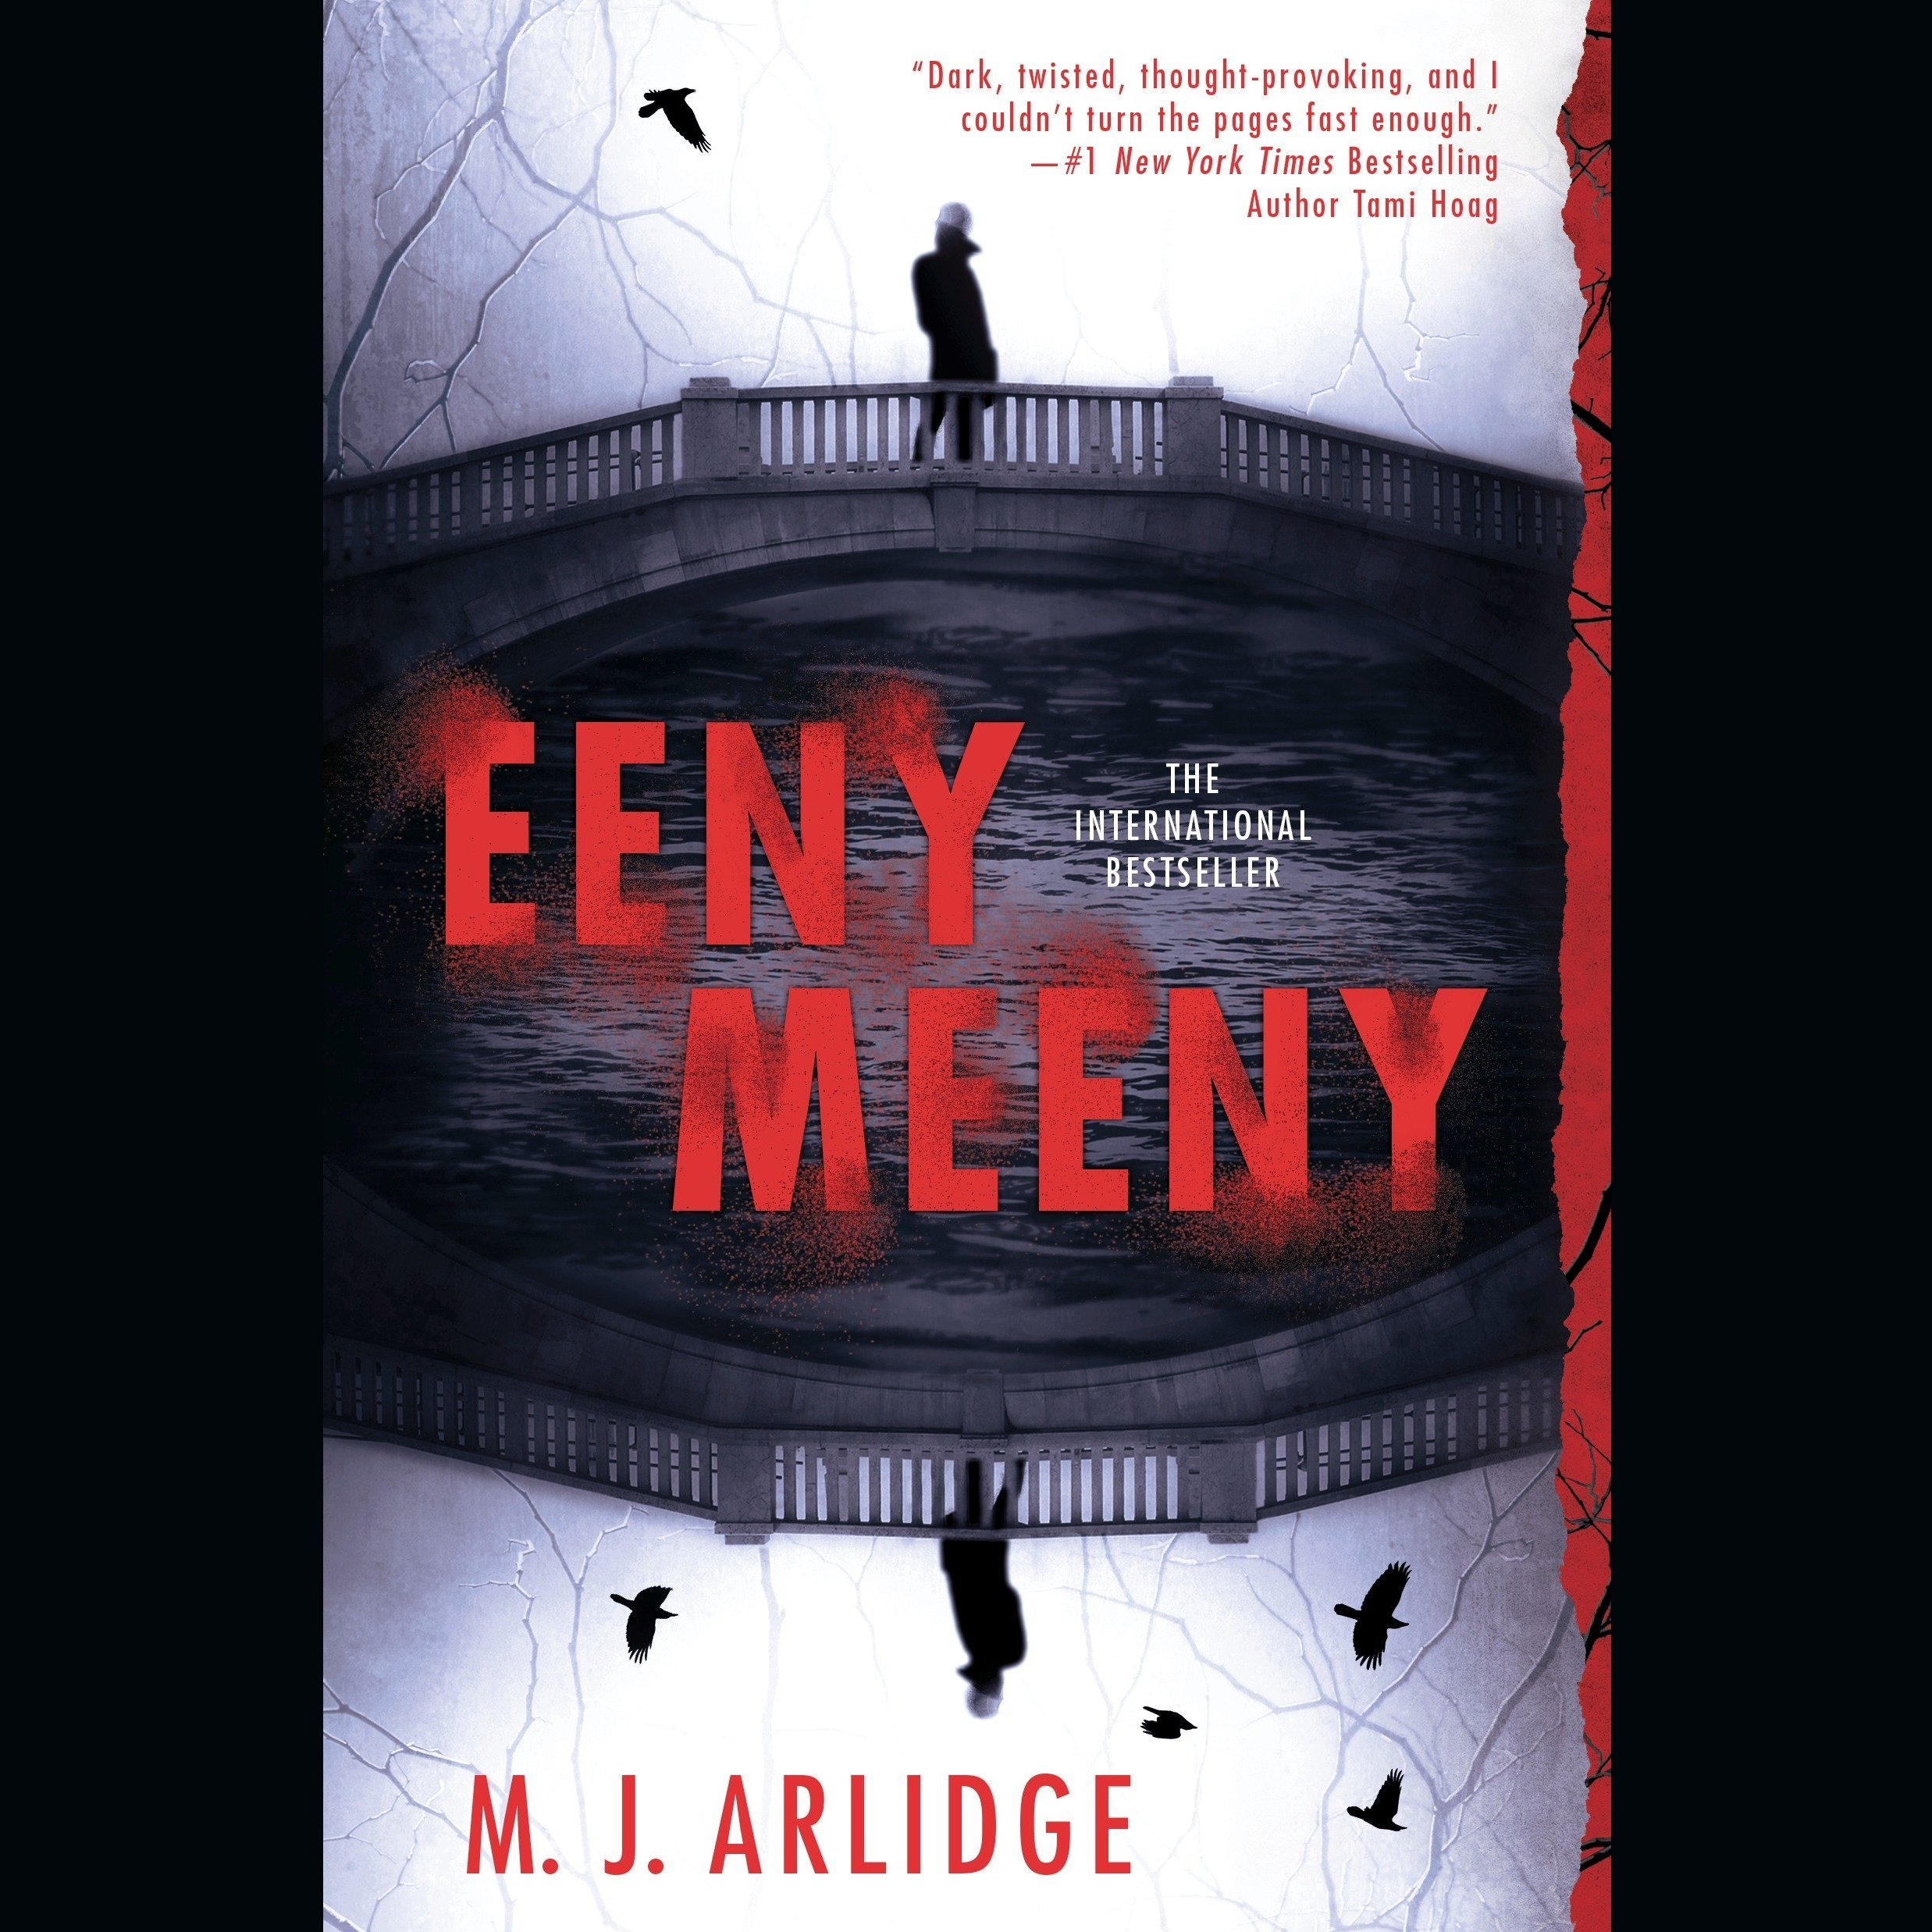 Printable Eeny Meeny Audiobook Cover Art